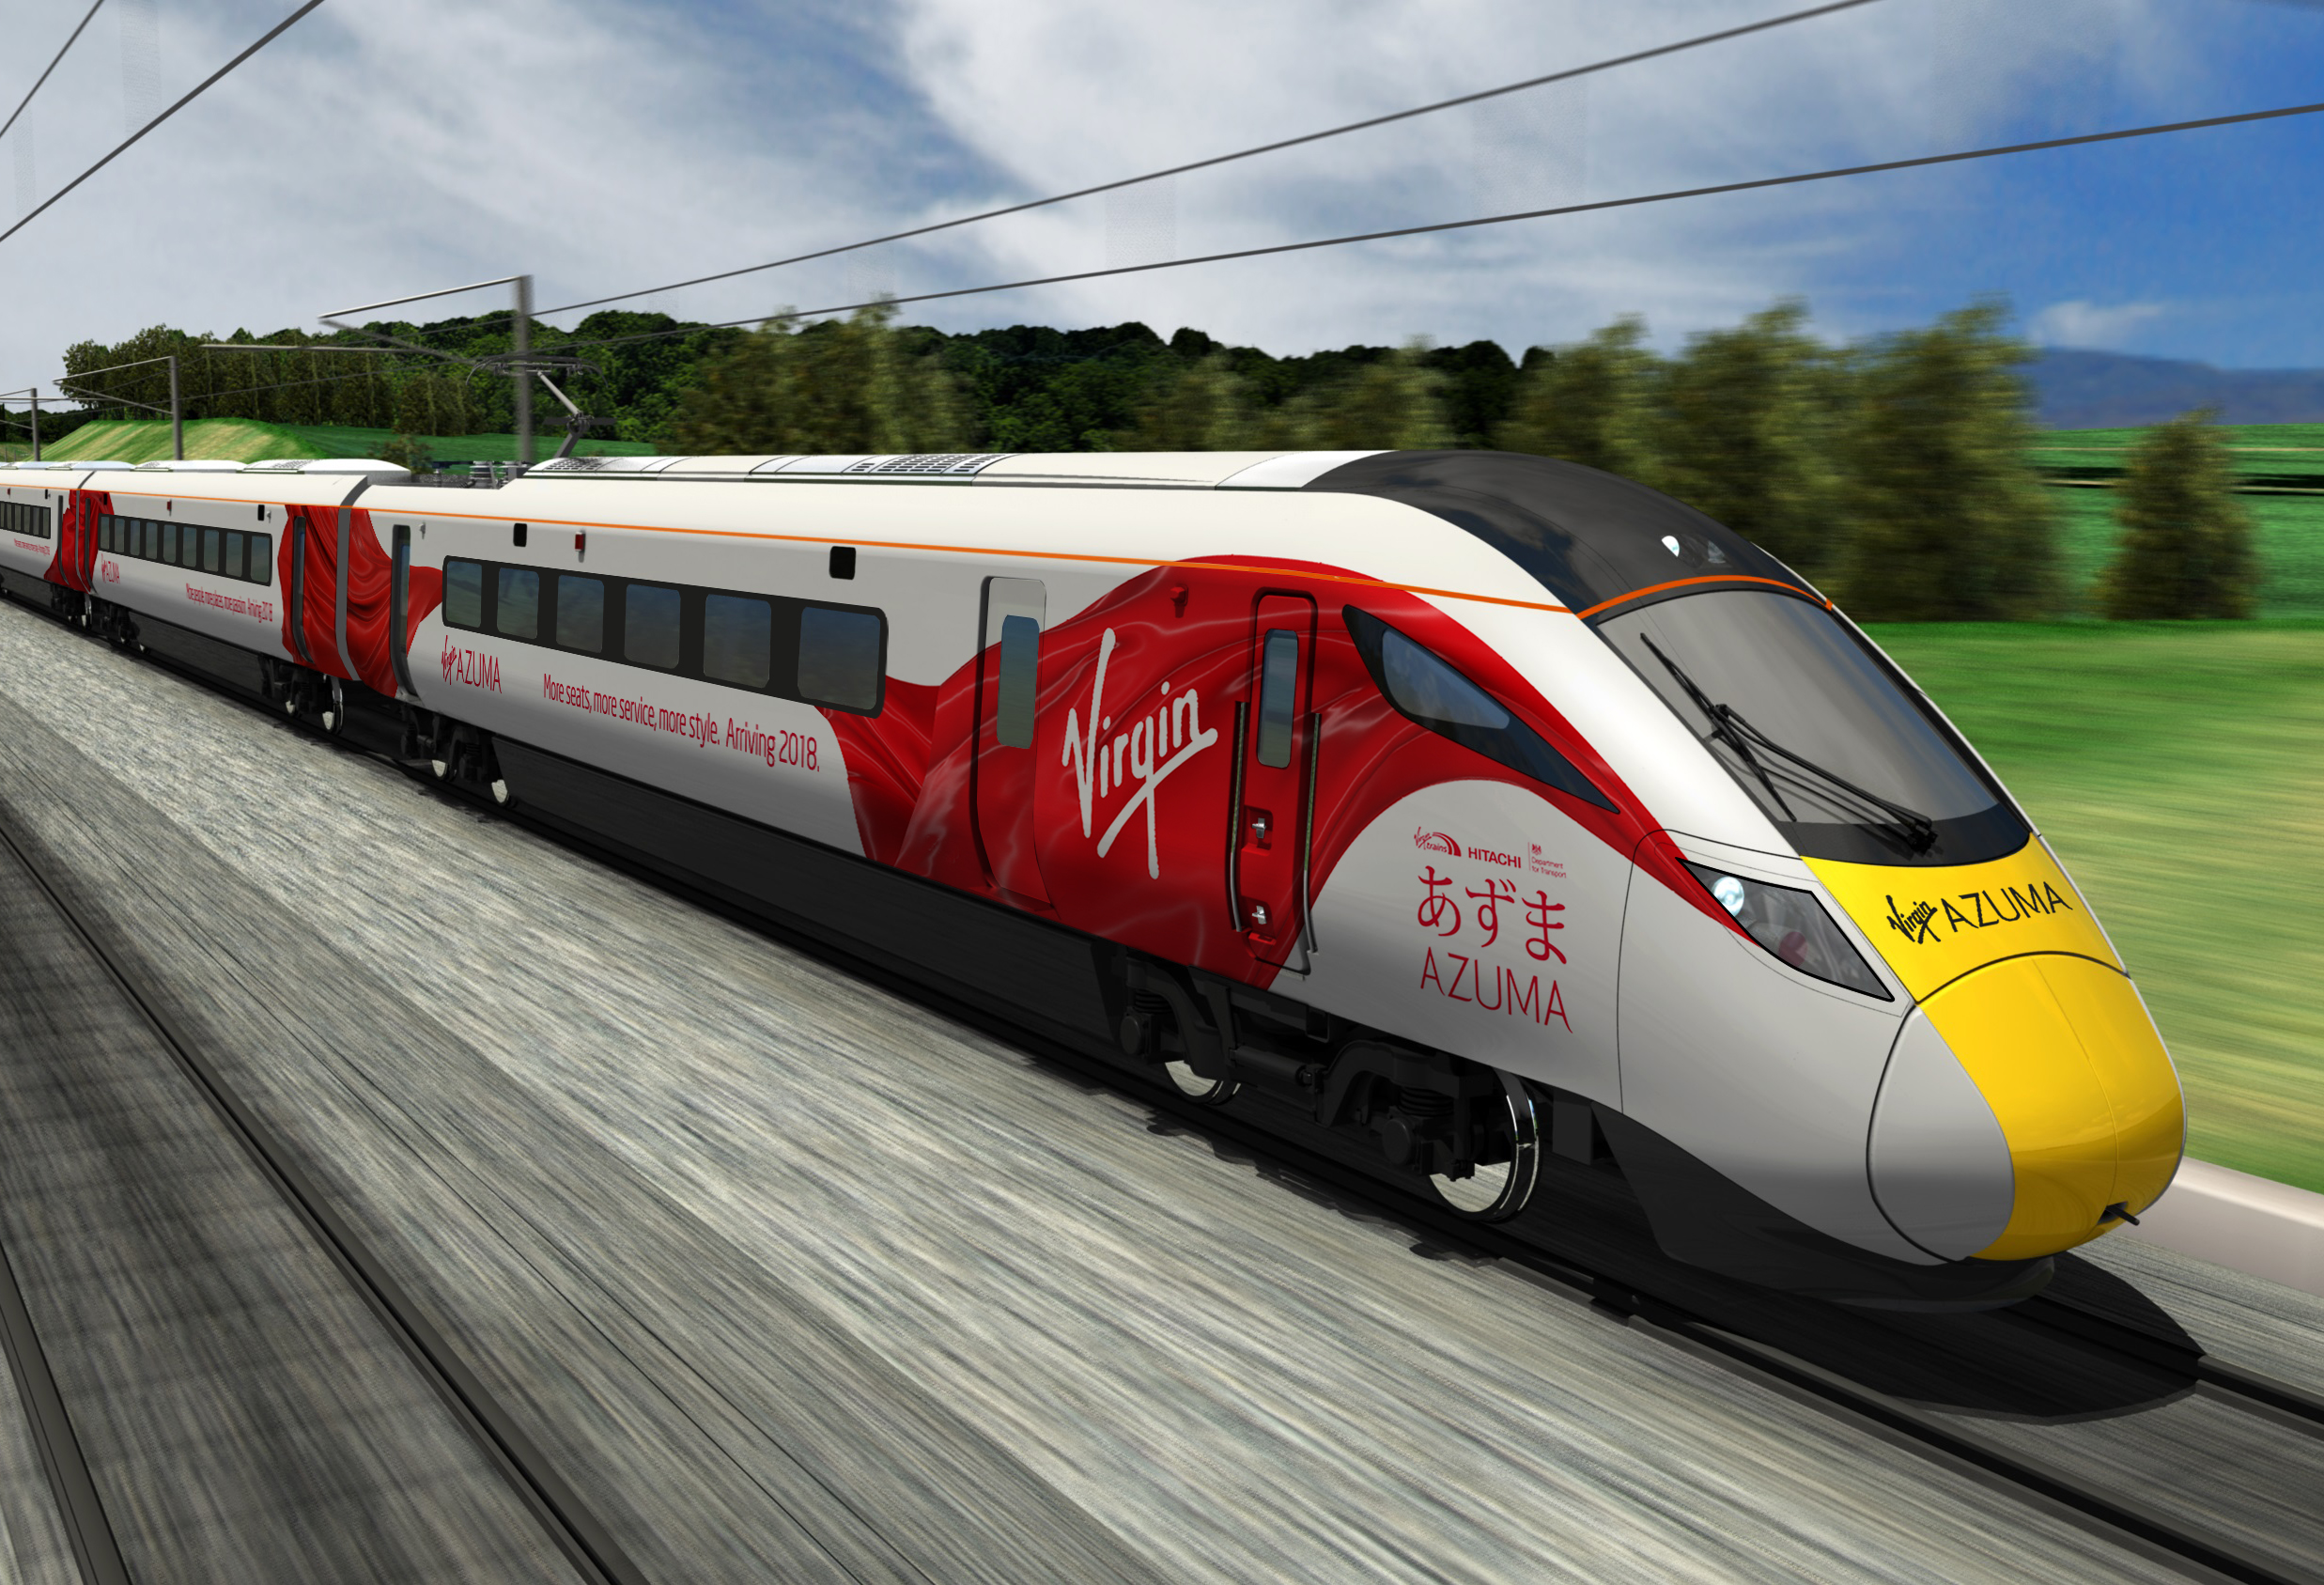 Virgin's Azuma unveiled for the East Coast